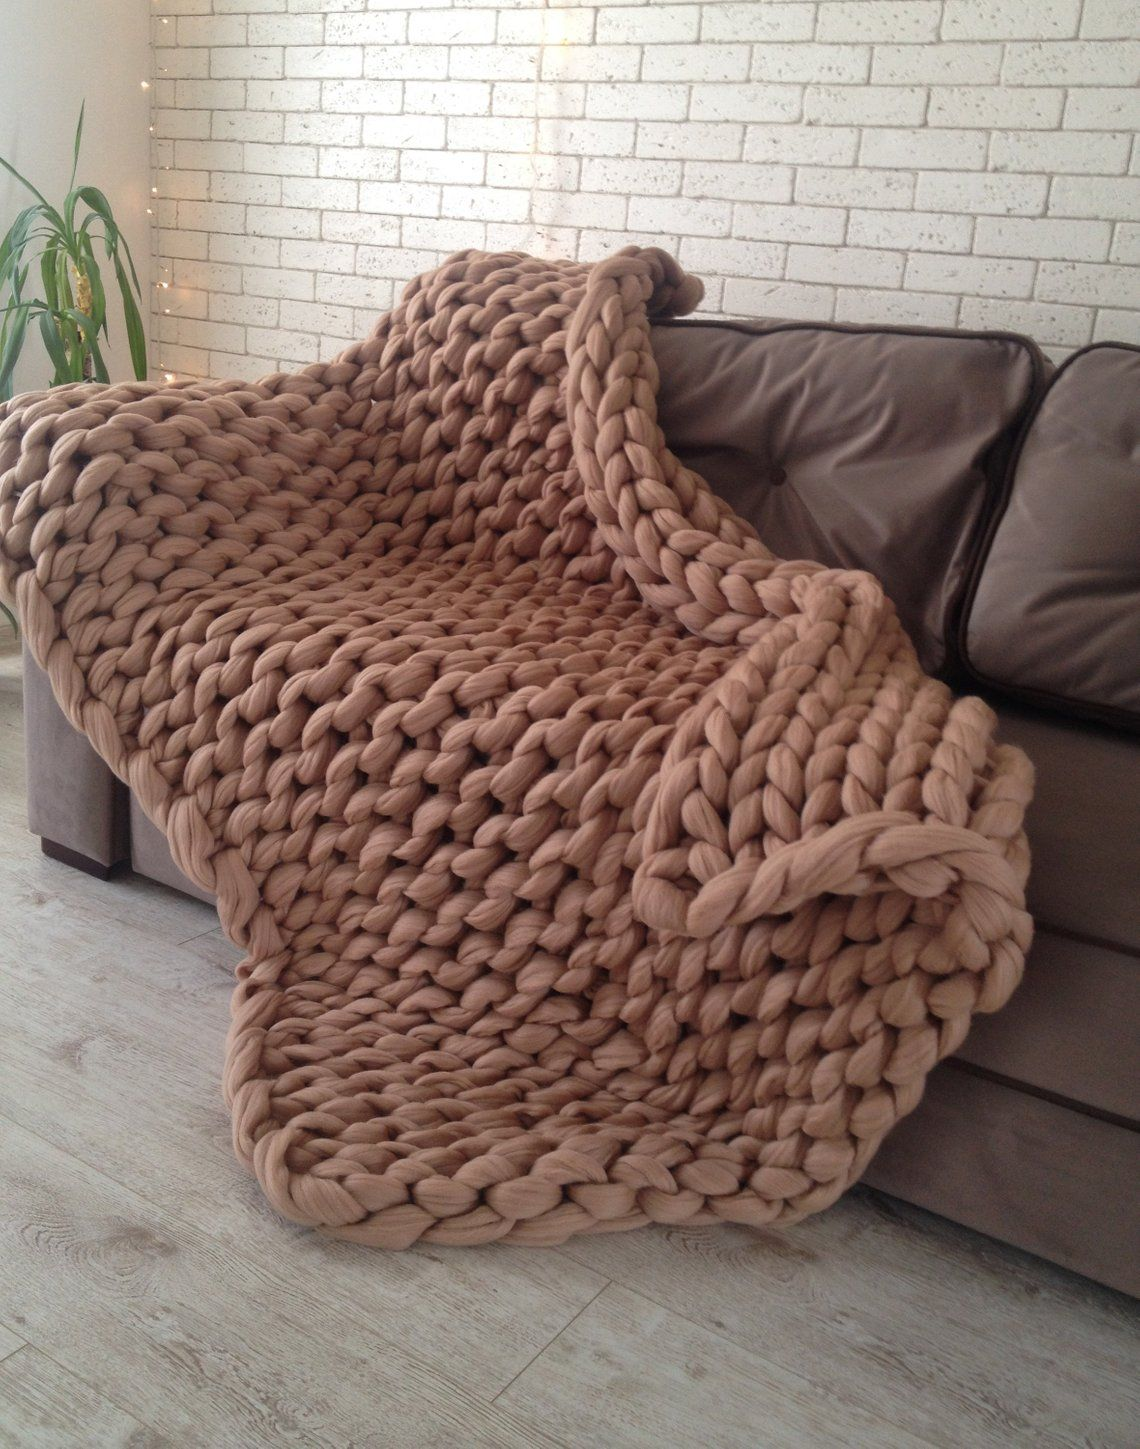 Chunky Knit Blanket Chunky Knit Throw Merino Wool Blanket Etsy Arm Knitting Blanket Chunky Knit Blanket Knitted Blankets